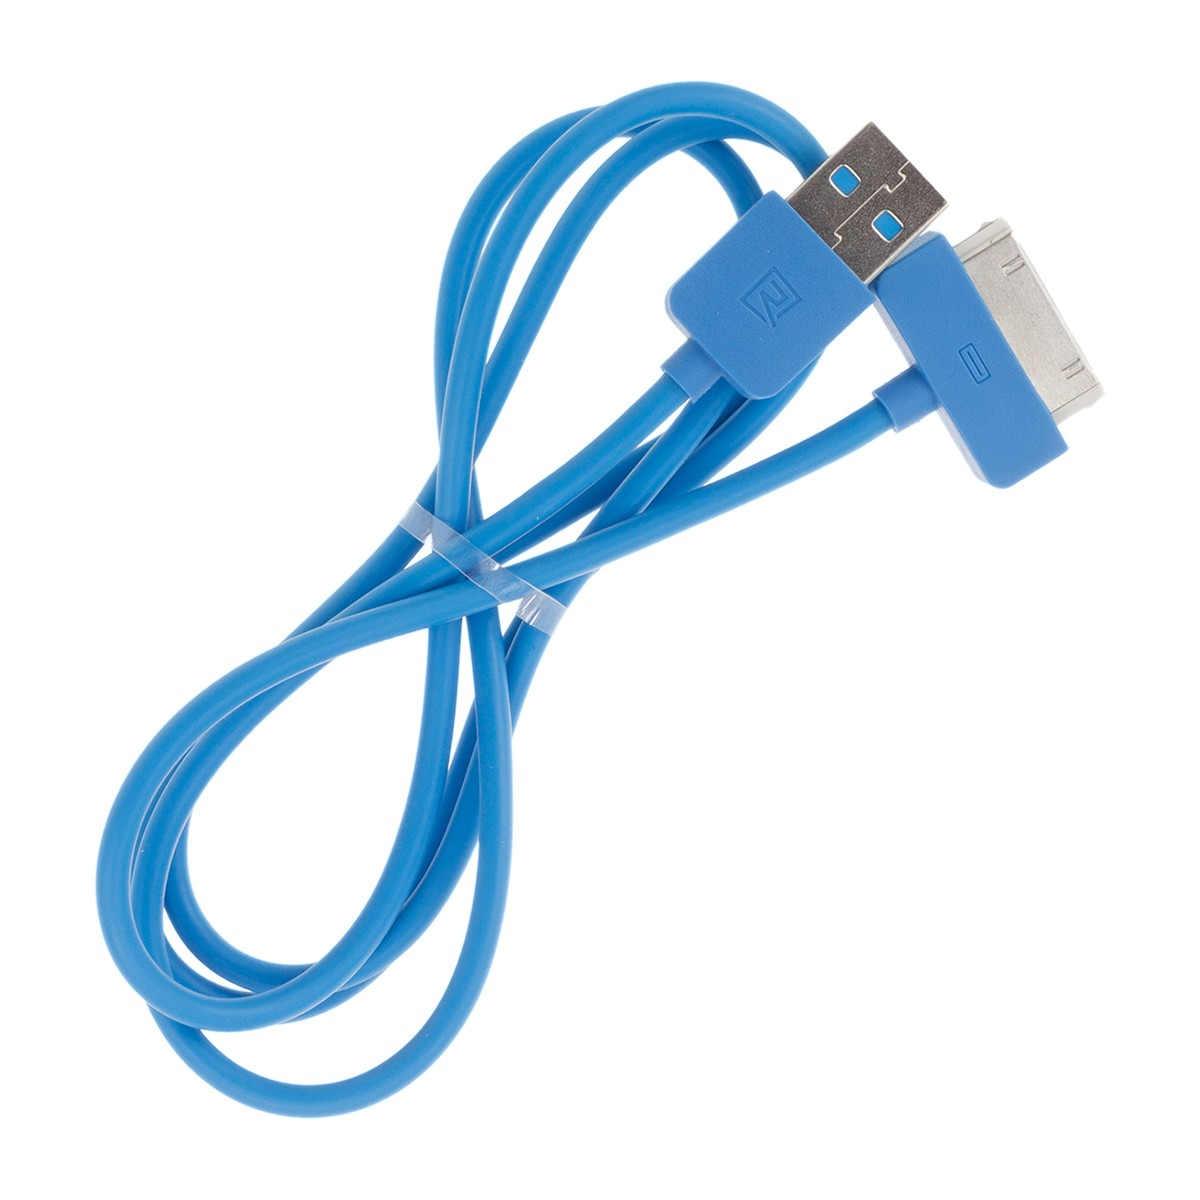 usb cable for iphone 4 4s blue. Black Bedroom Furniture Sets. Home Design Ideas